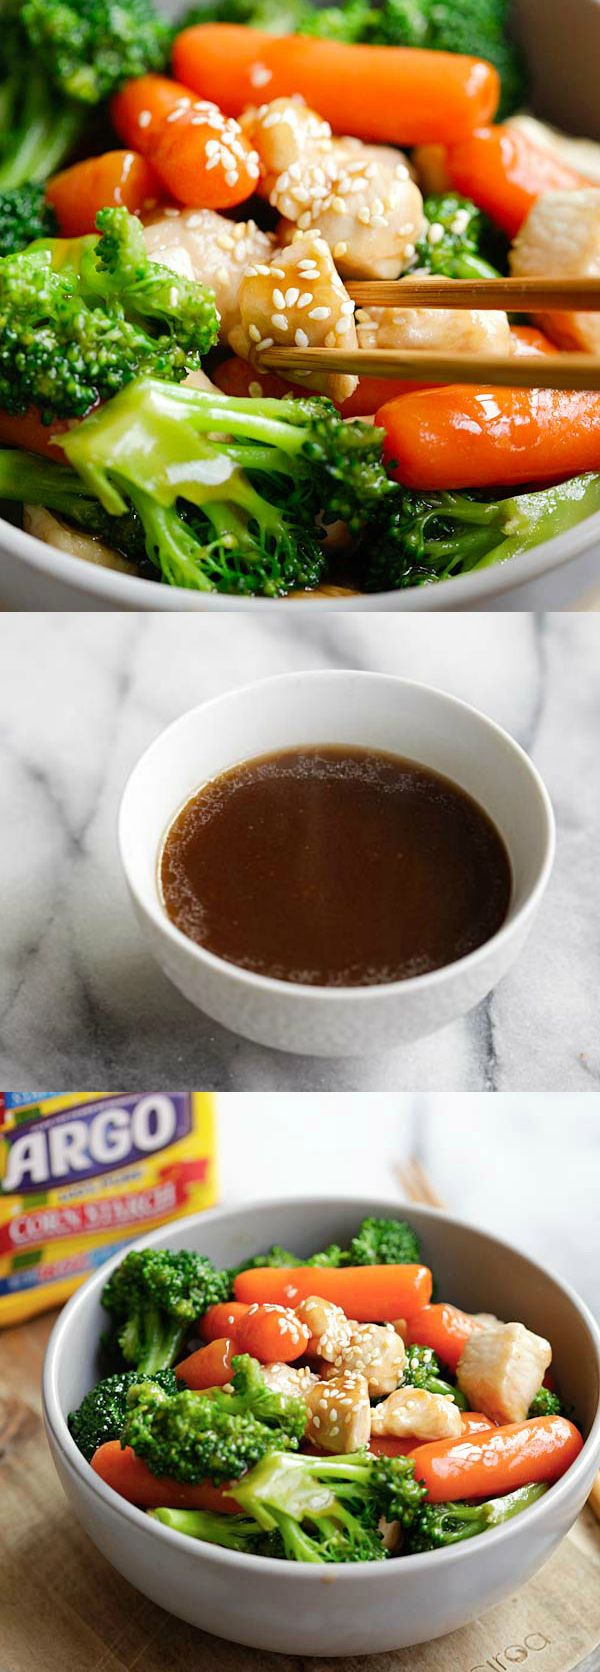 Easy Stir Fry Sauce – learn how to make Chinese and Asian food with this delicious all-purpose stir fry sauce recipe. Homemade stir fries have never been easier | rasamalaysia.com #ad